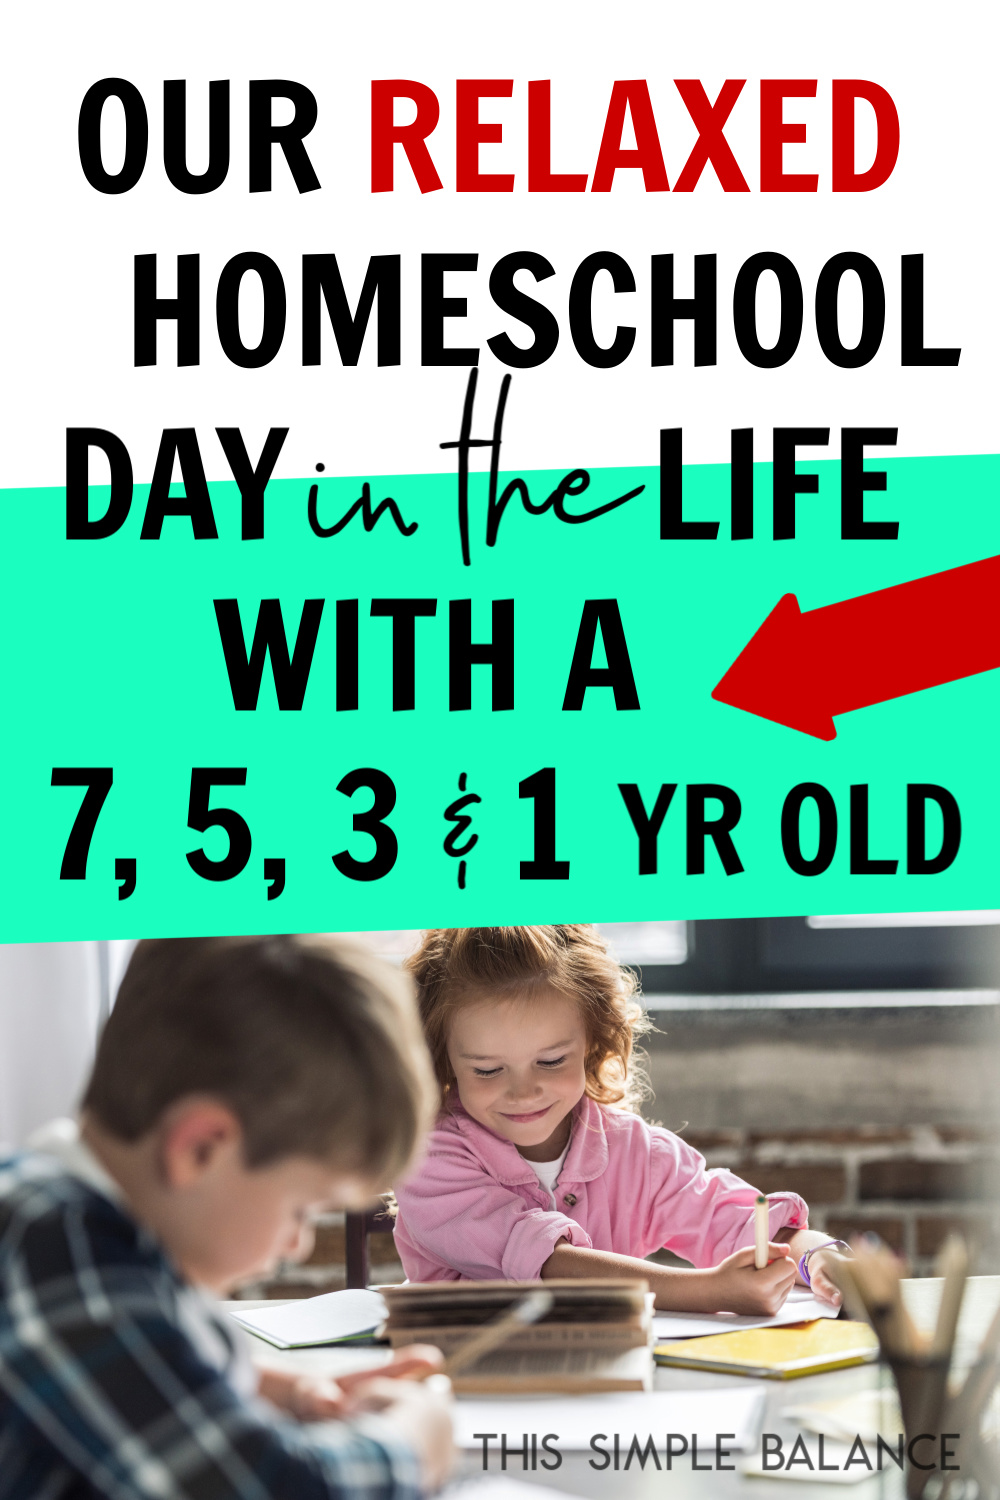 Relaxed homeschooling day in the life with 4 kids - ages 7 to 1 #homeschool